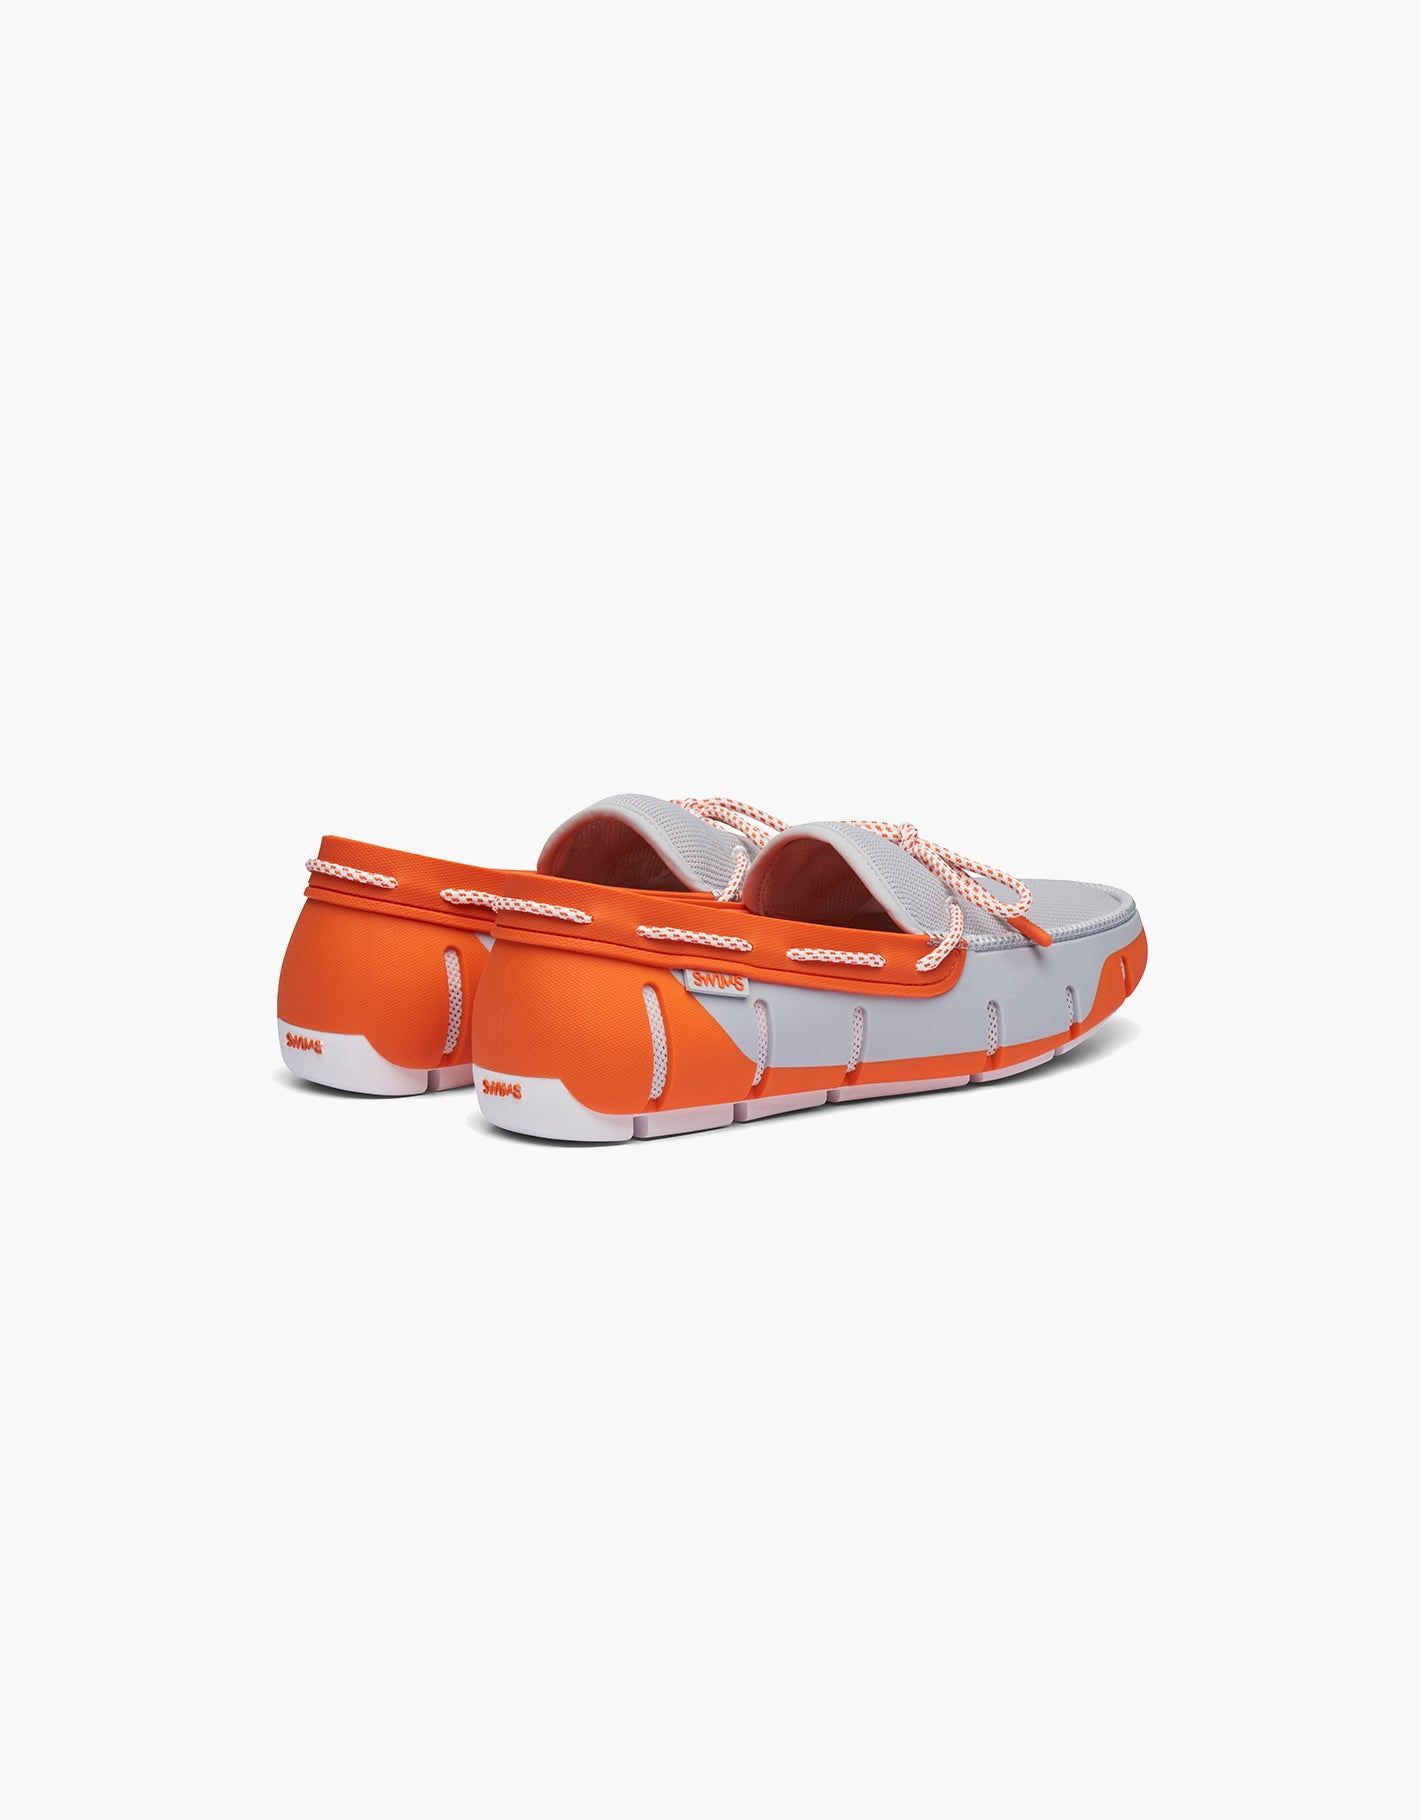 STRIDE LACE LOAFER - SWIMS - Dicons